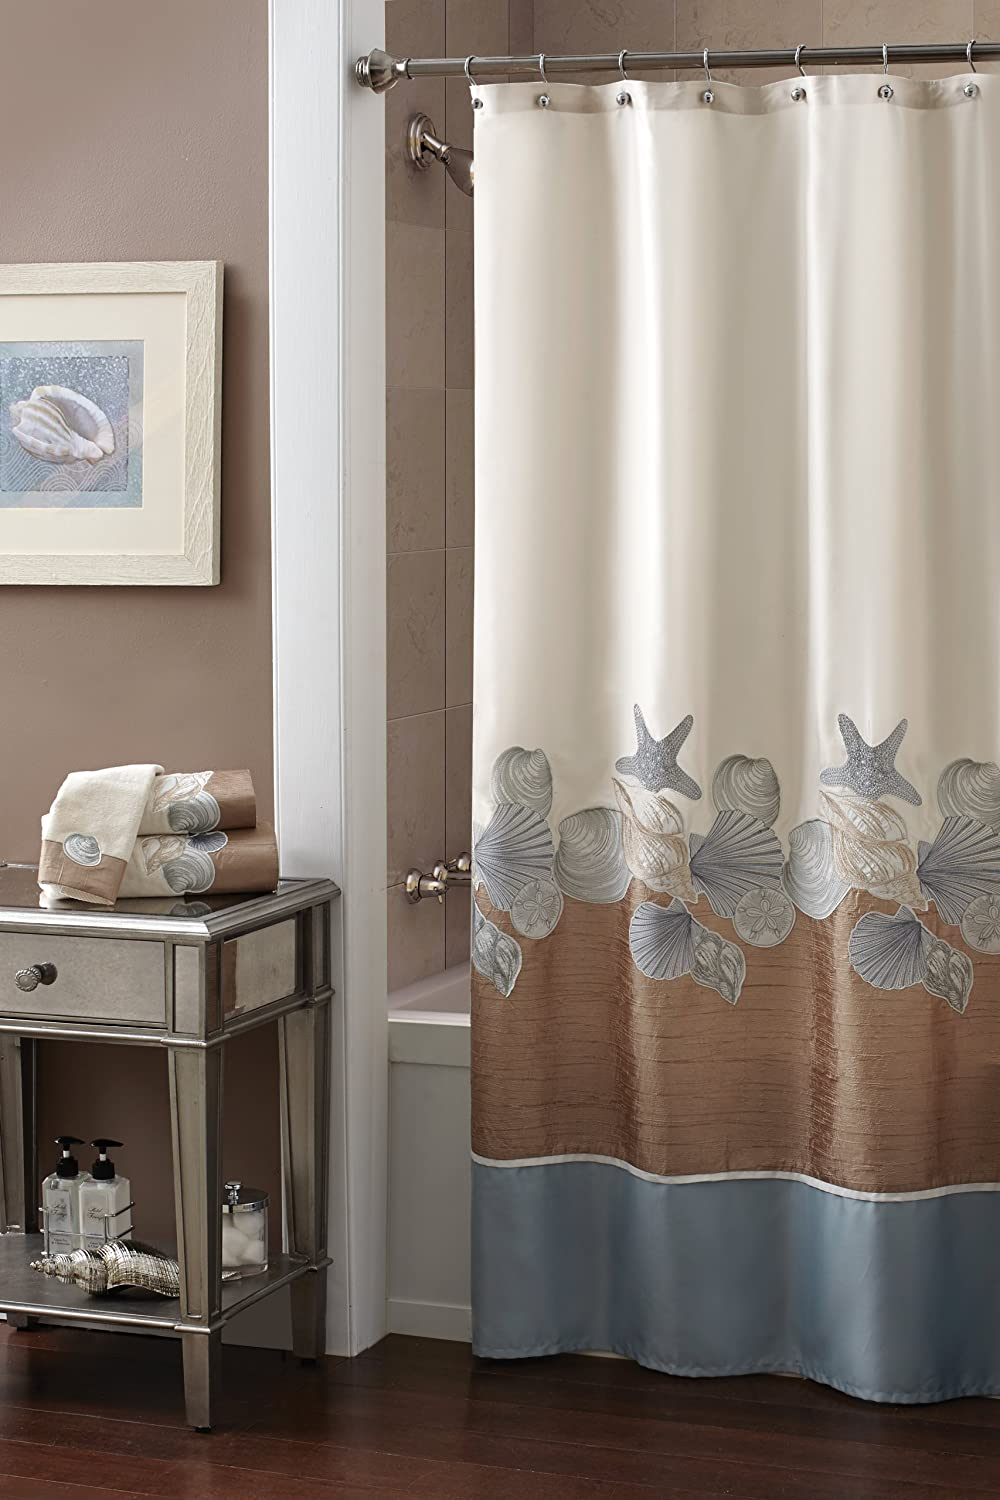 Beautiful Nautical Curtains for Shower and Windows |